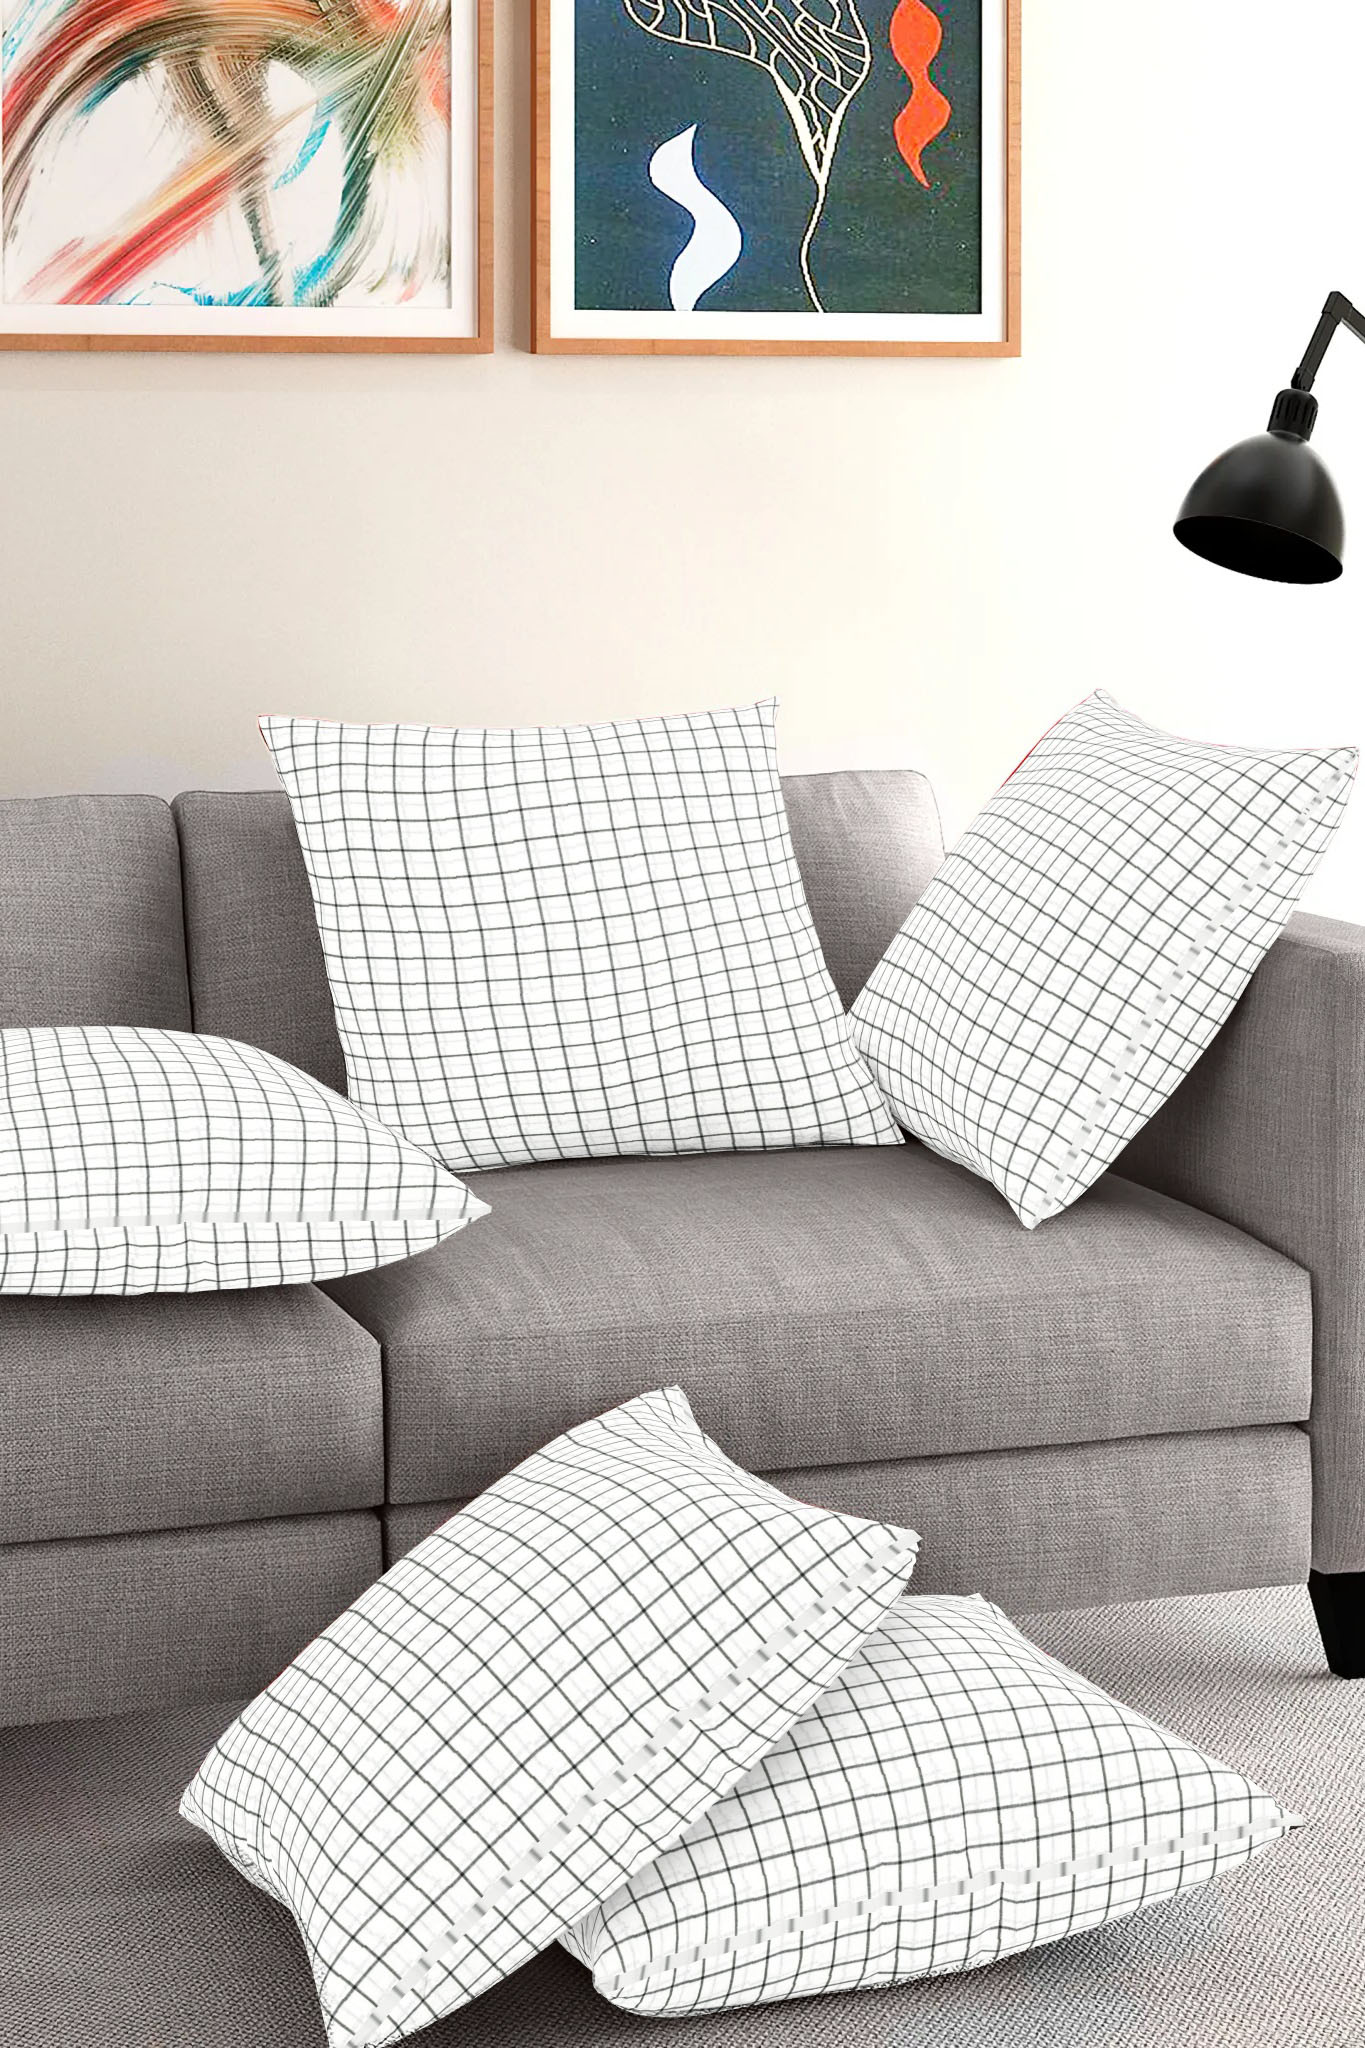 Set of 5-White Black Cotton Cushion Cover-35409-16x16 Inches